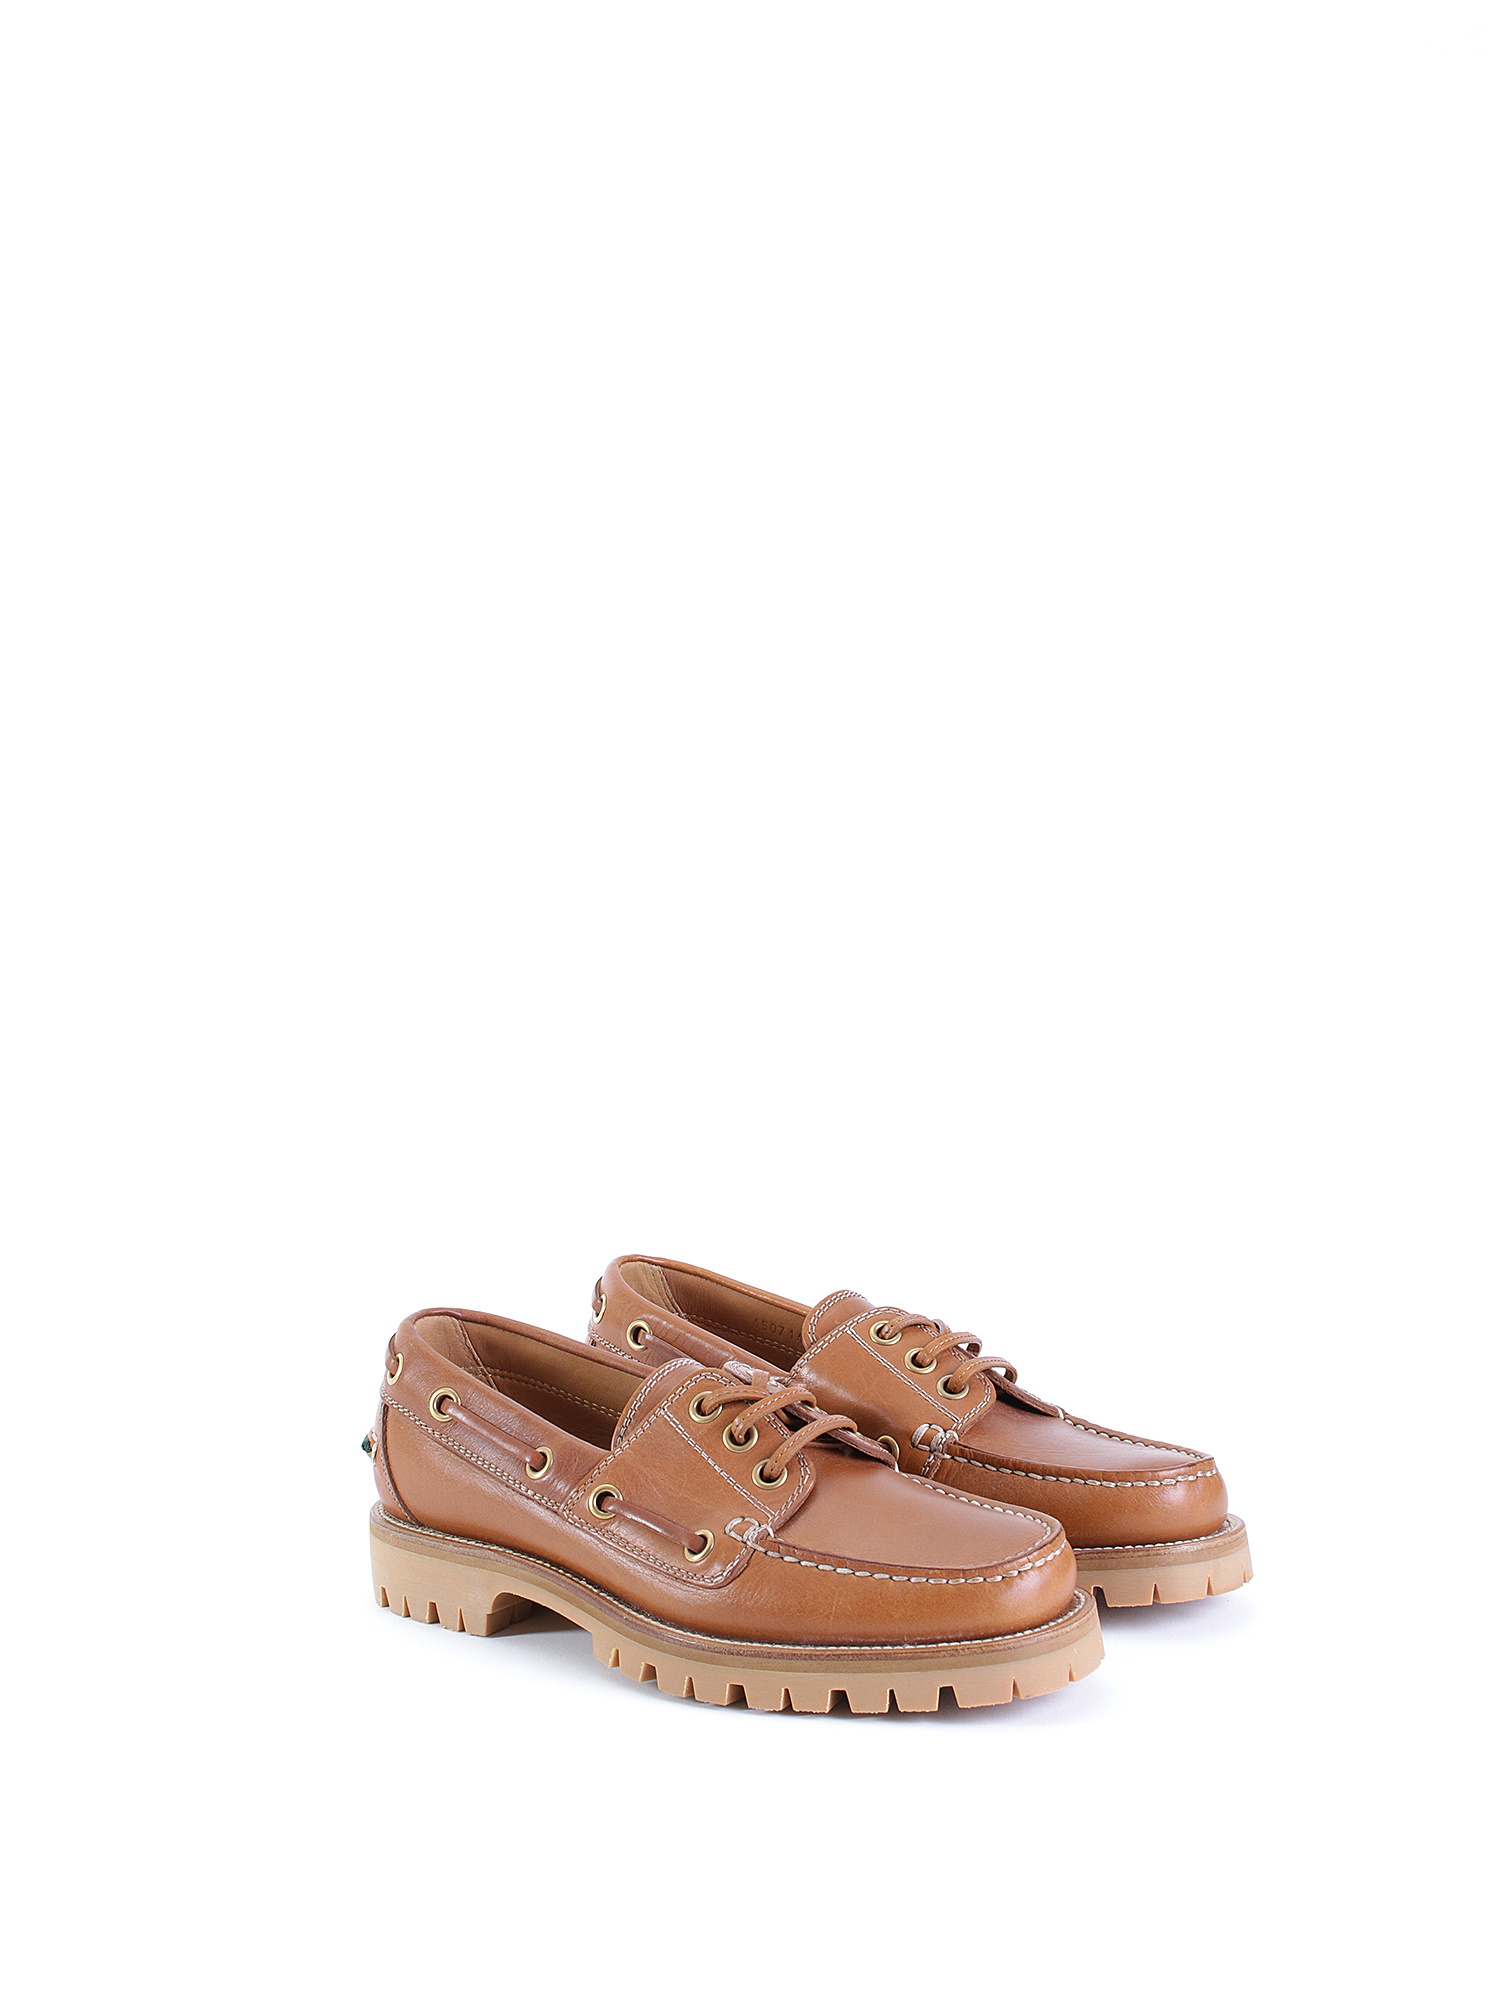 Gucci Leather Boat Shoes   RUSE